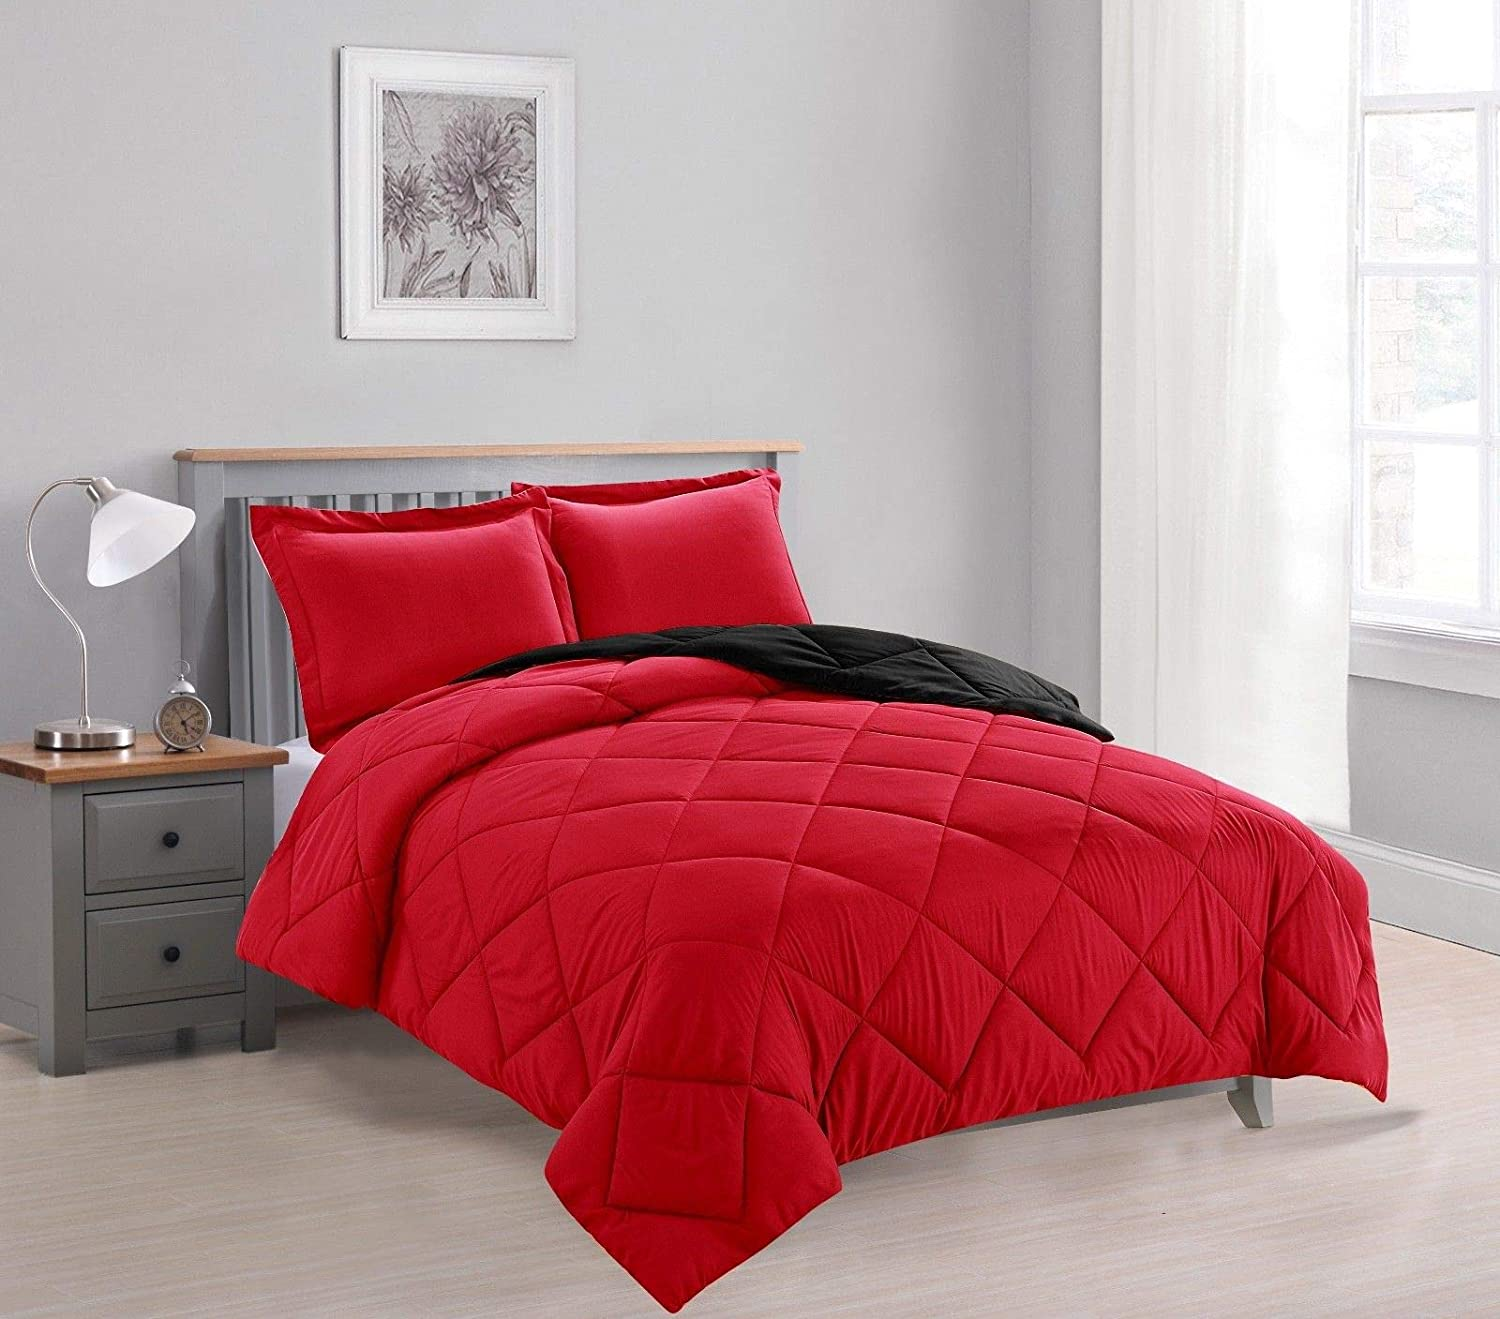 Empire Home 3-PC Reversible Down Alternative All Season Comforter Set with (Red/Black, Full Size)